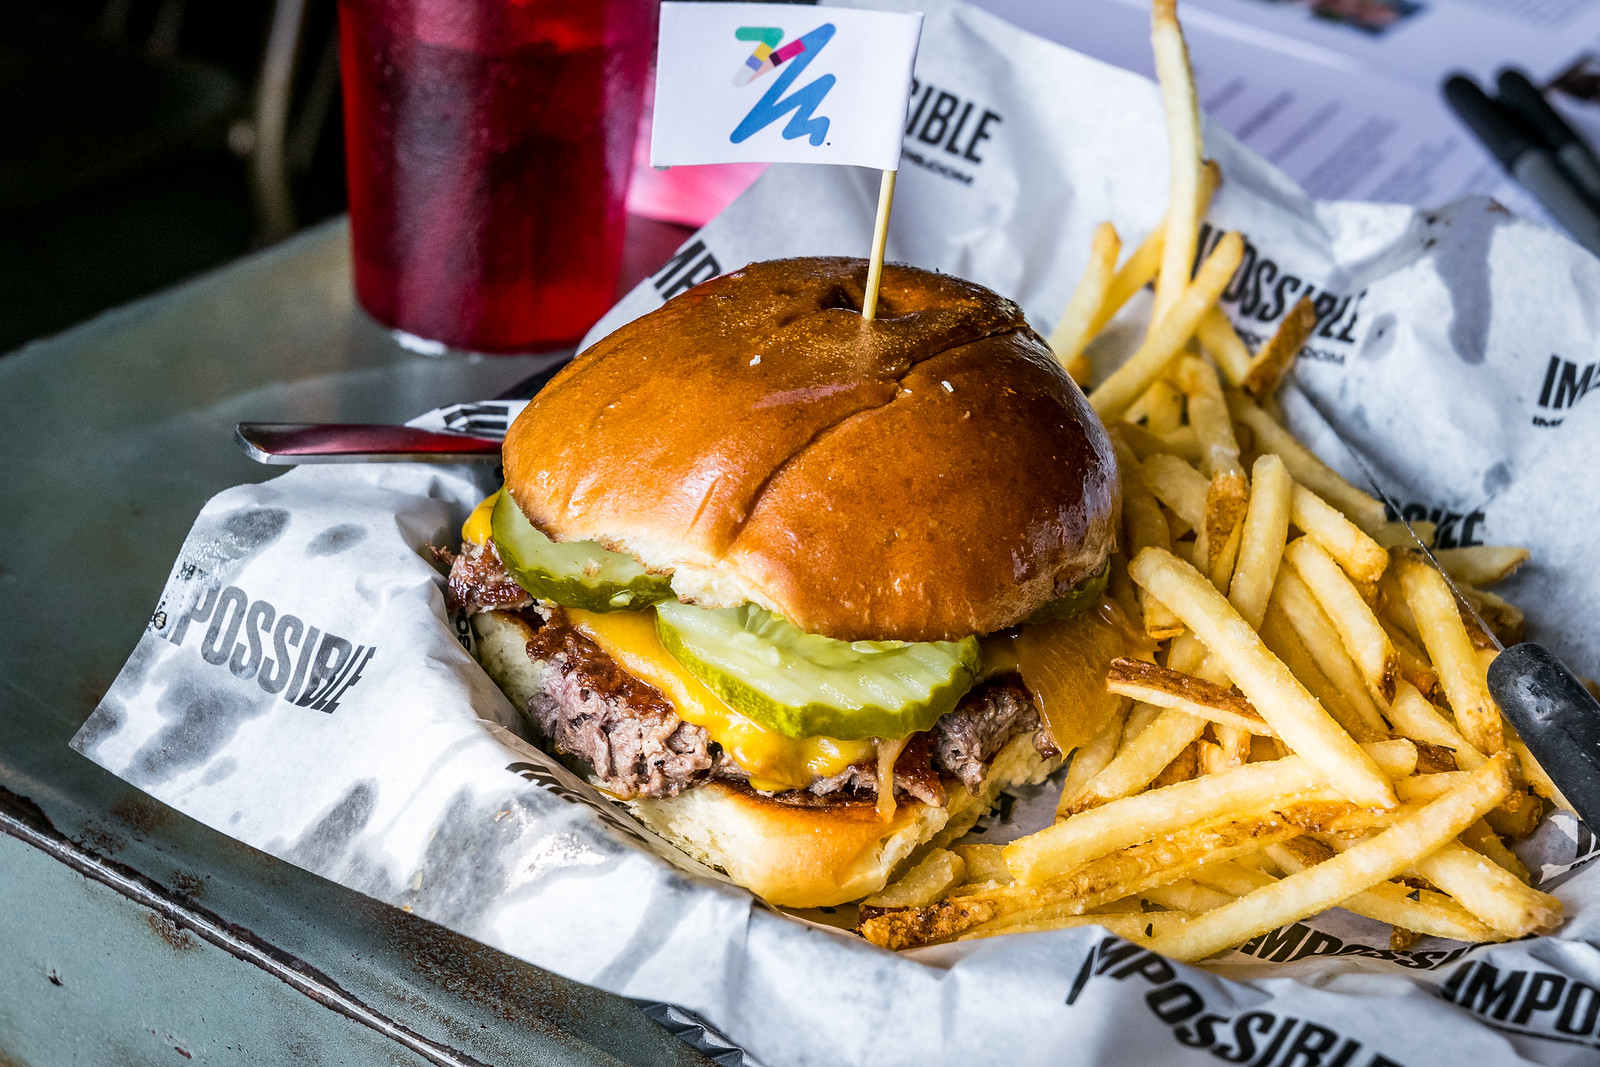 The Impossible Burger in all its glory